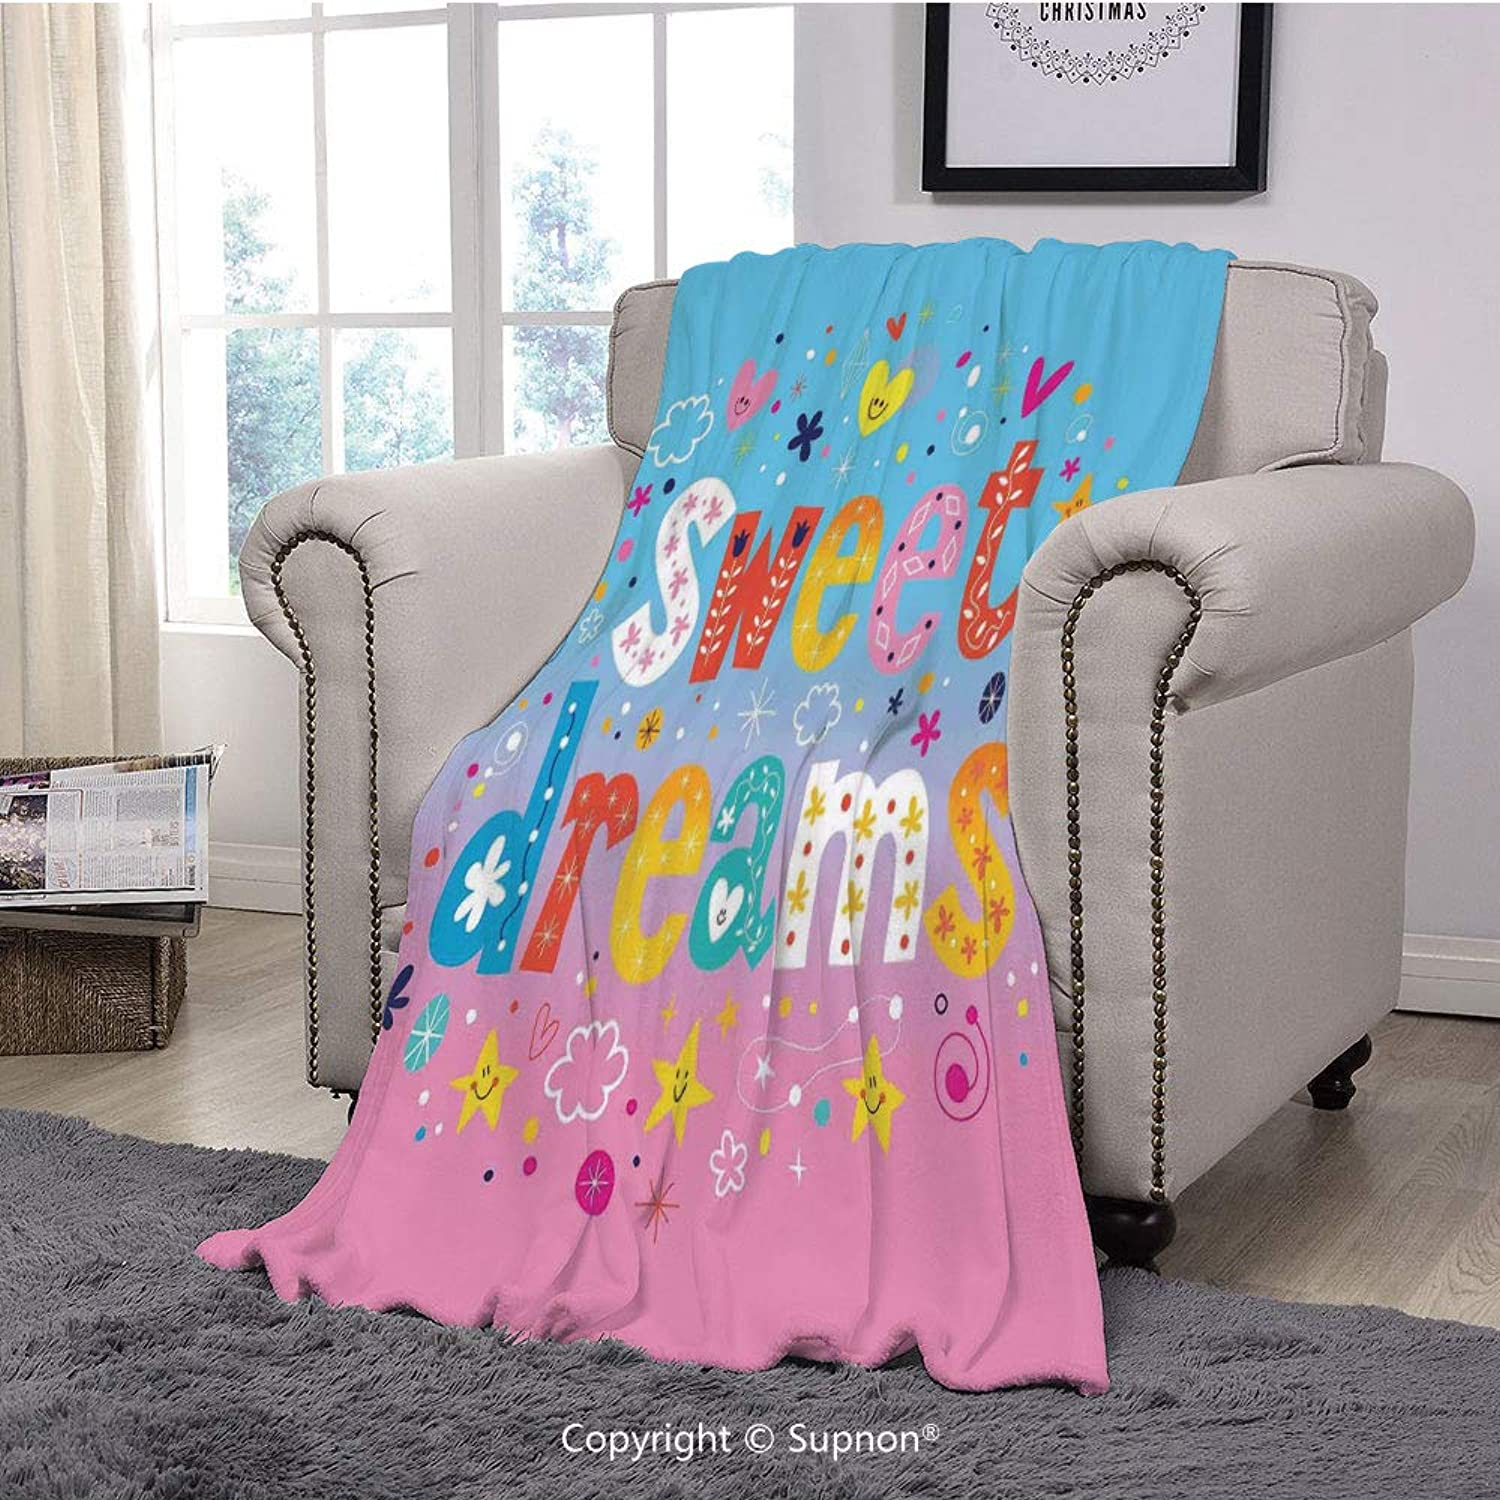 Printing Blanket Coral Plush Super Soft Decorative Throw Blanket,Kids,Sweet Dreams colorful Ombre Stars Flowers Clouds Hearts Funny Letters Baby Toddlers Printed Art(59  x 59 )